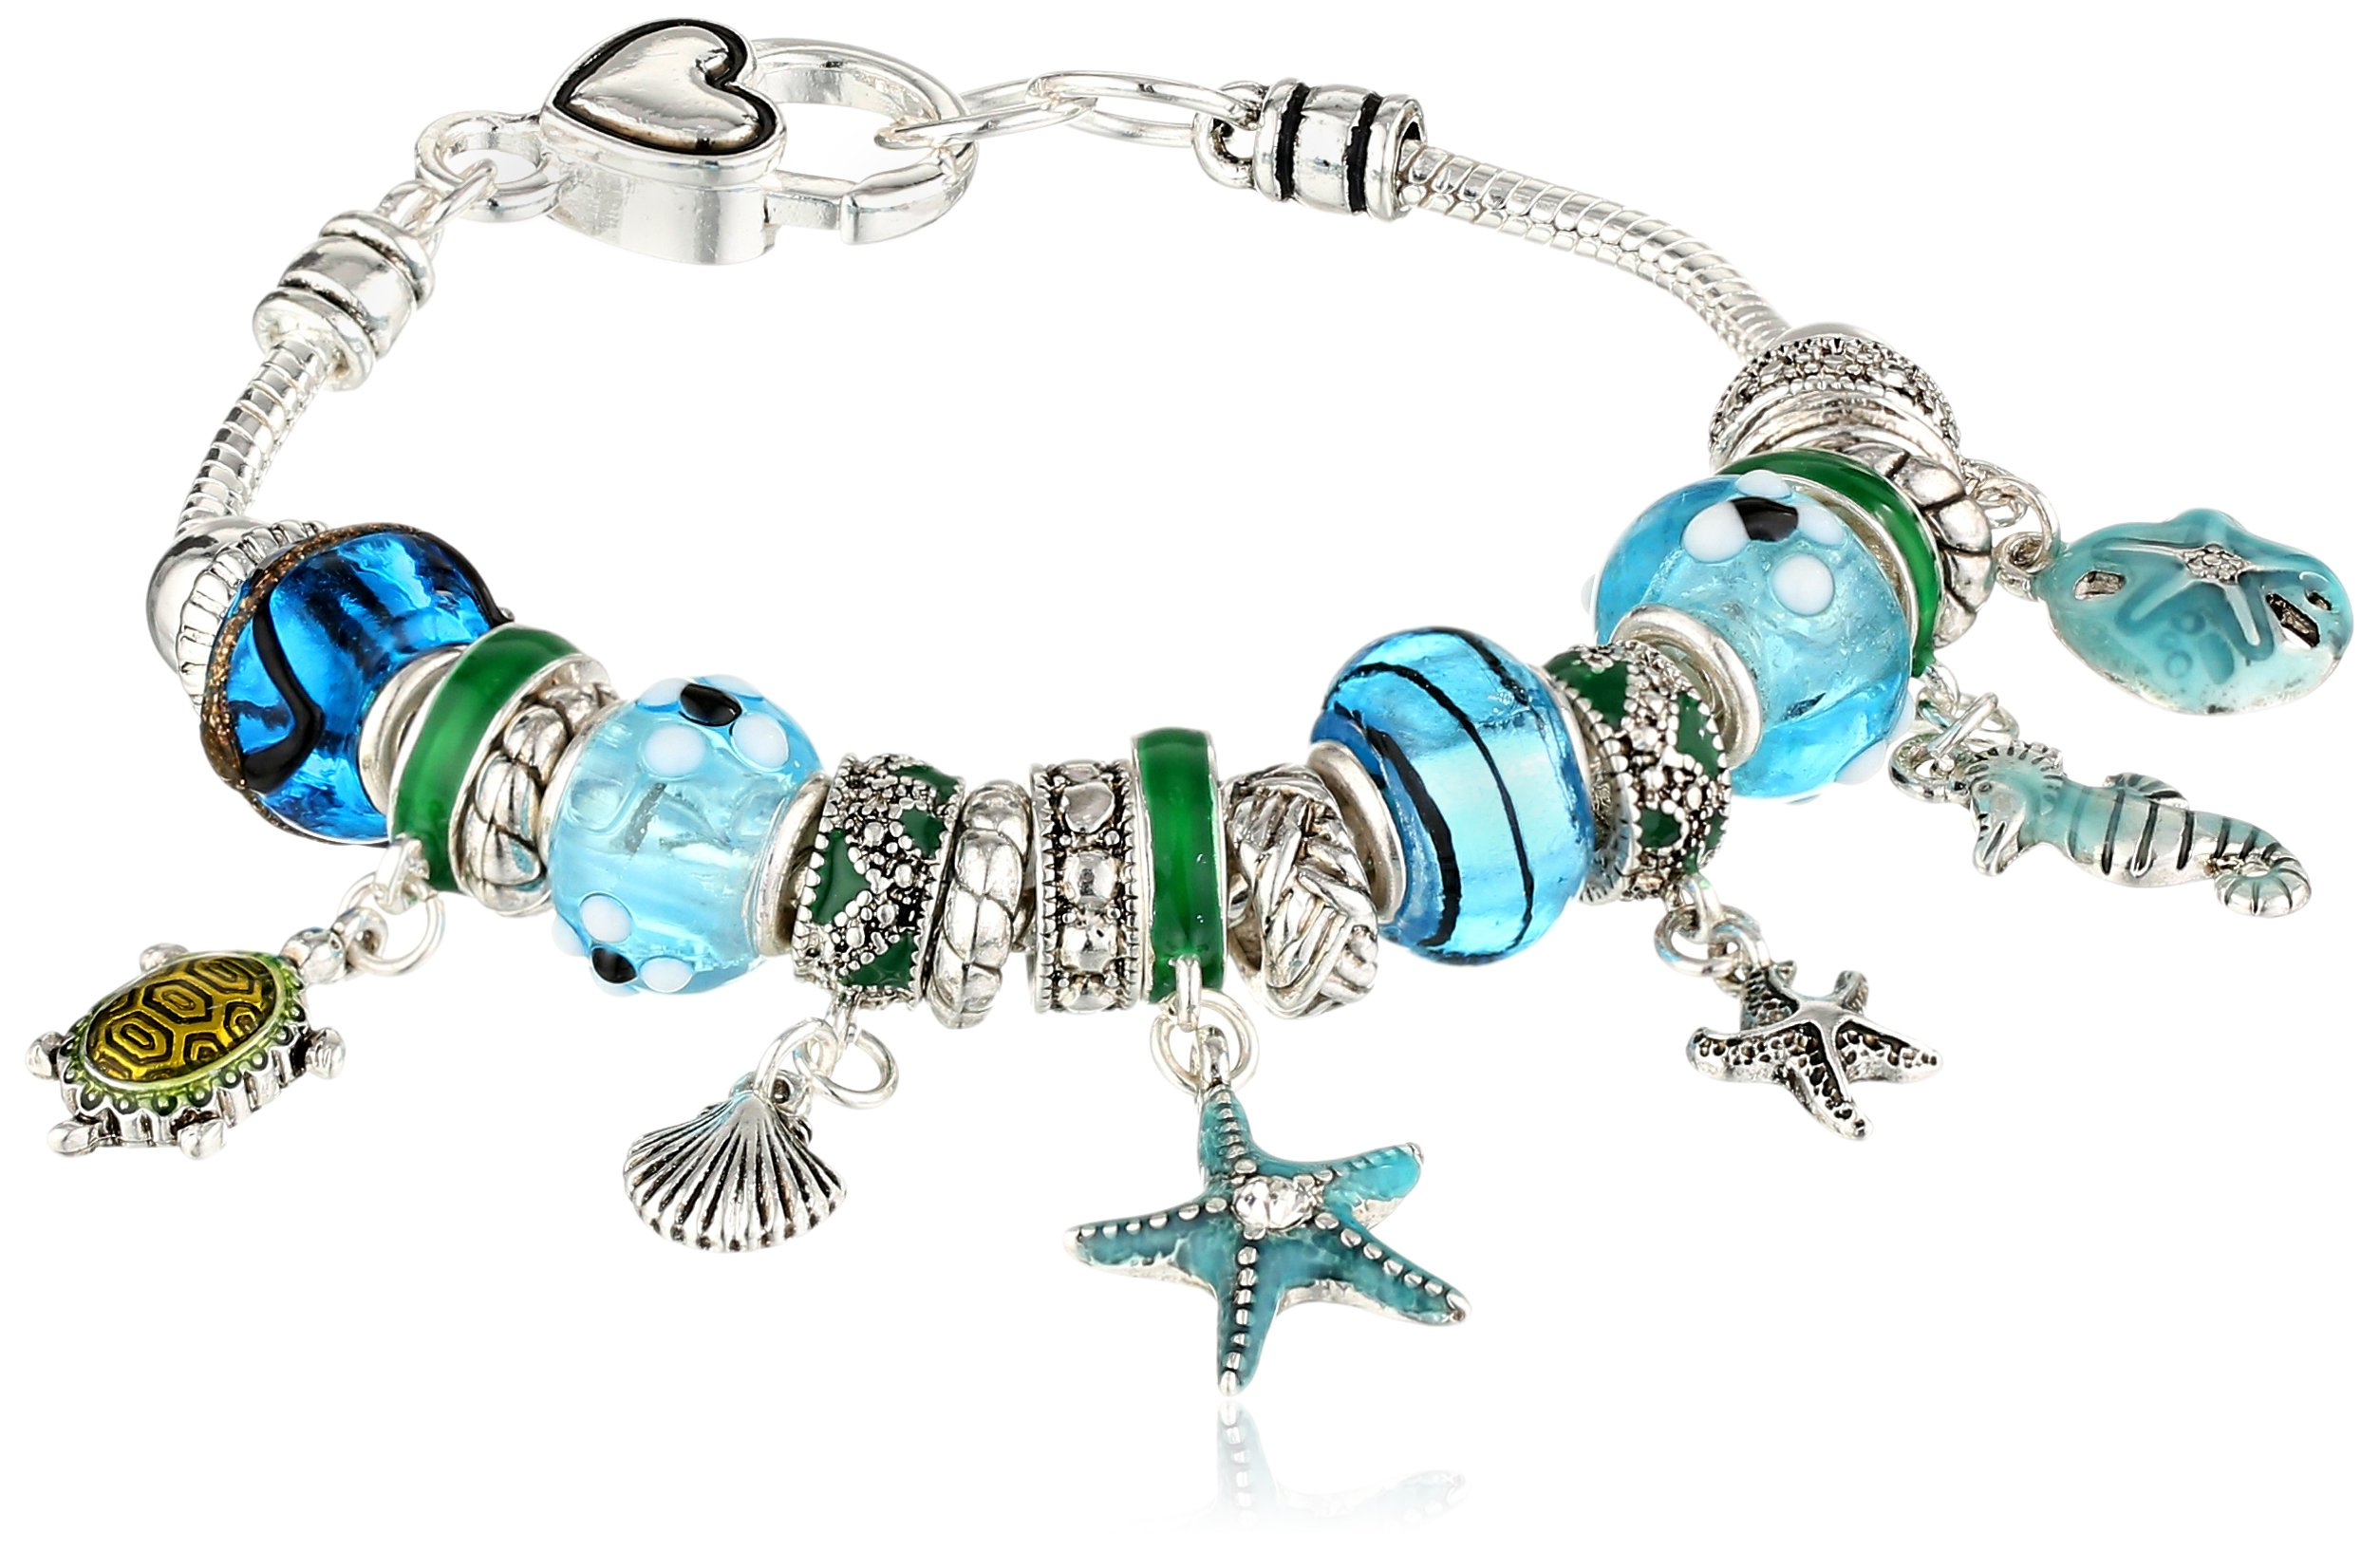 Silver Tone Metal and Glass Beach Themed Bead Charm Bracelet